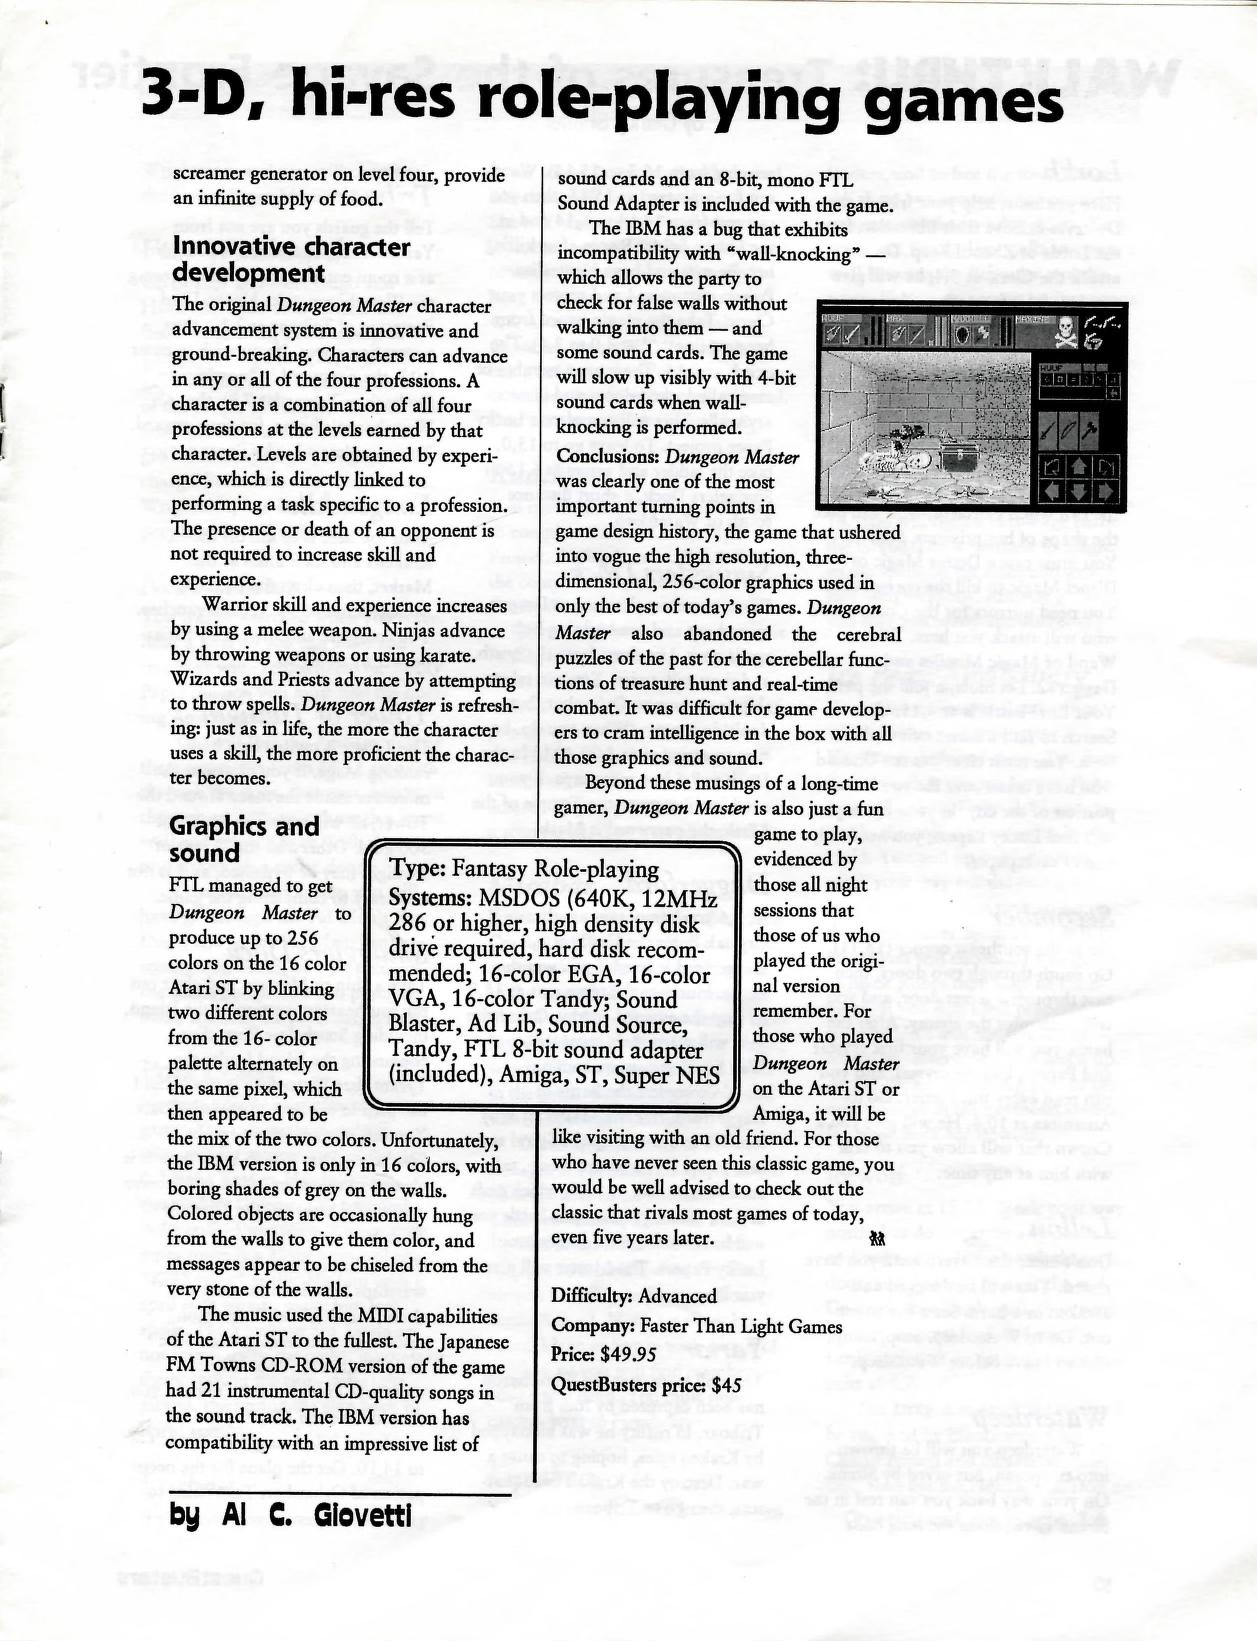 Dungeon Master for PC Review published in American magazine 'QuestBusters', Vol 9 No 12 December 1992, Page 9